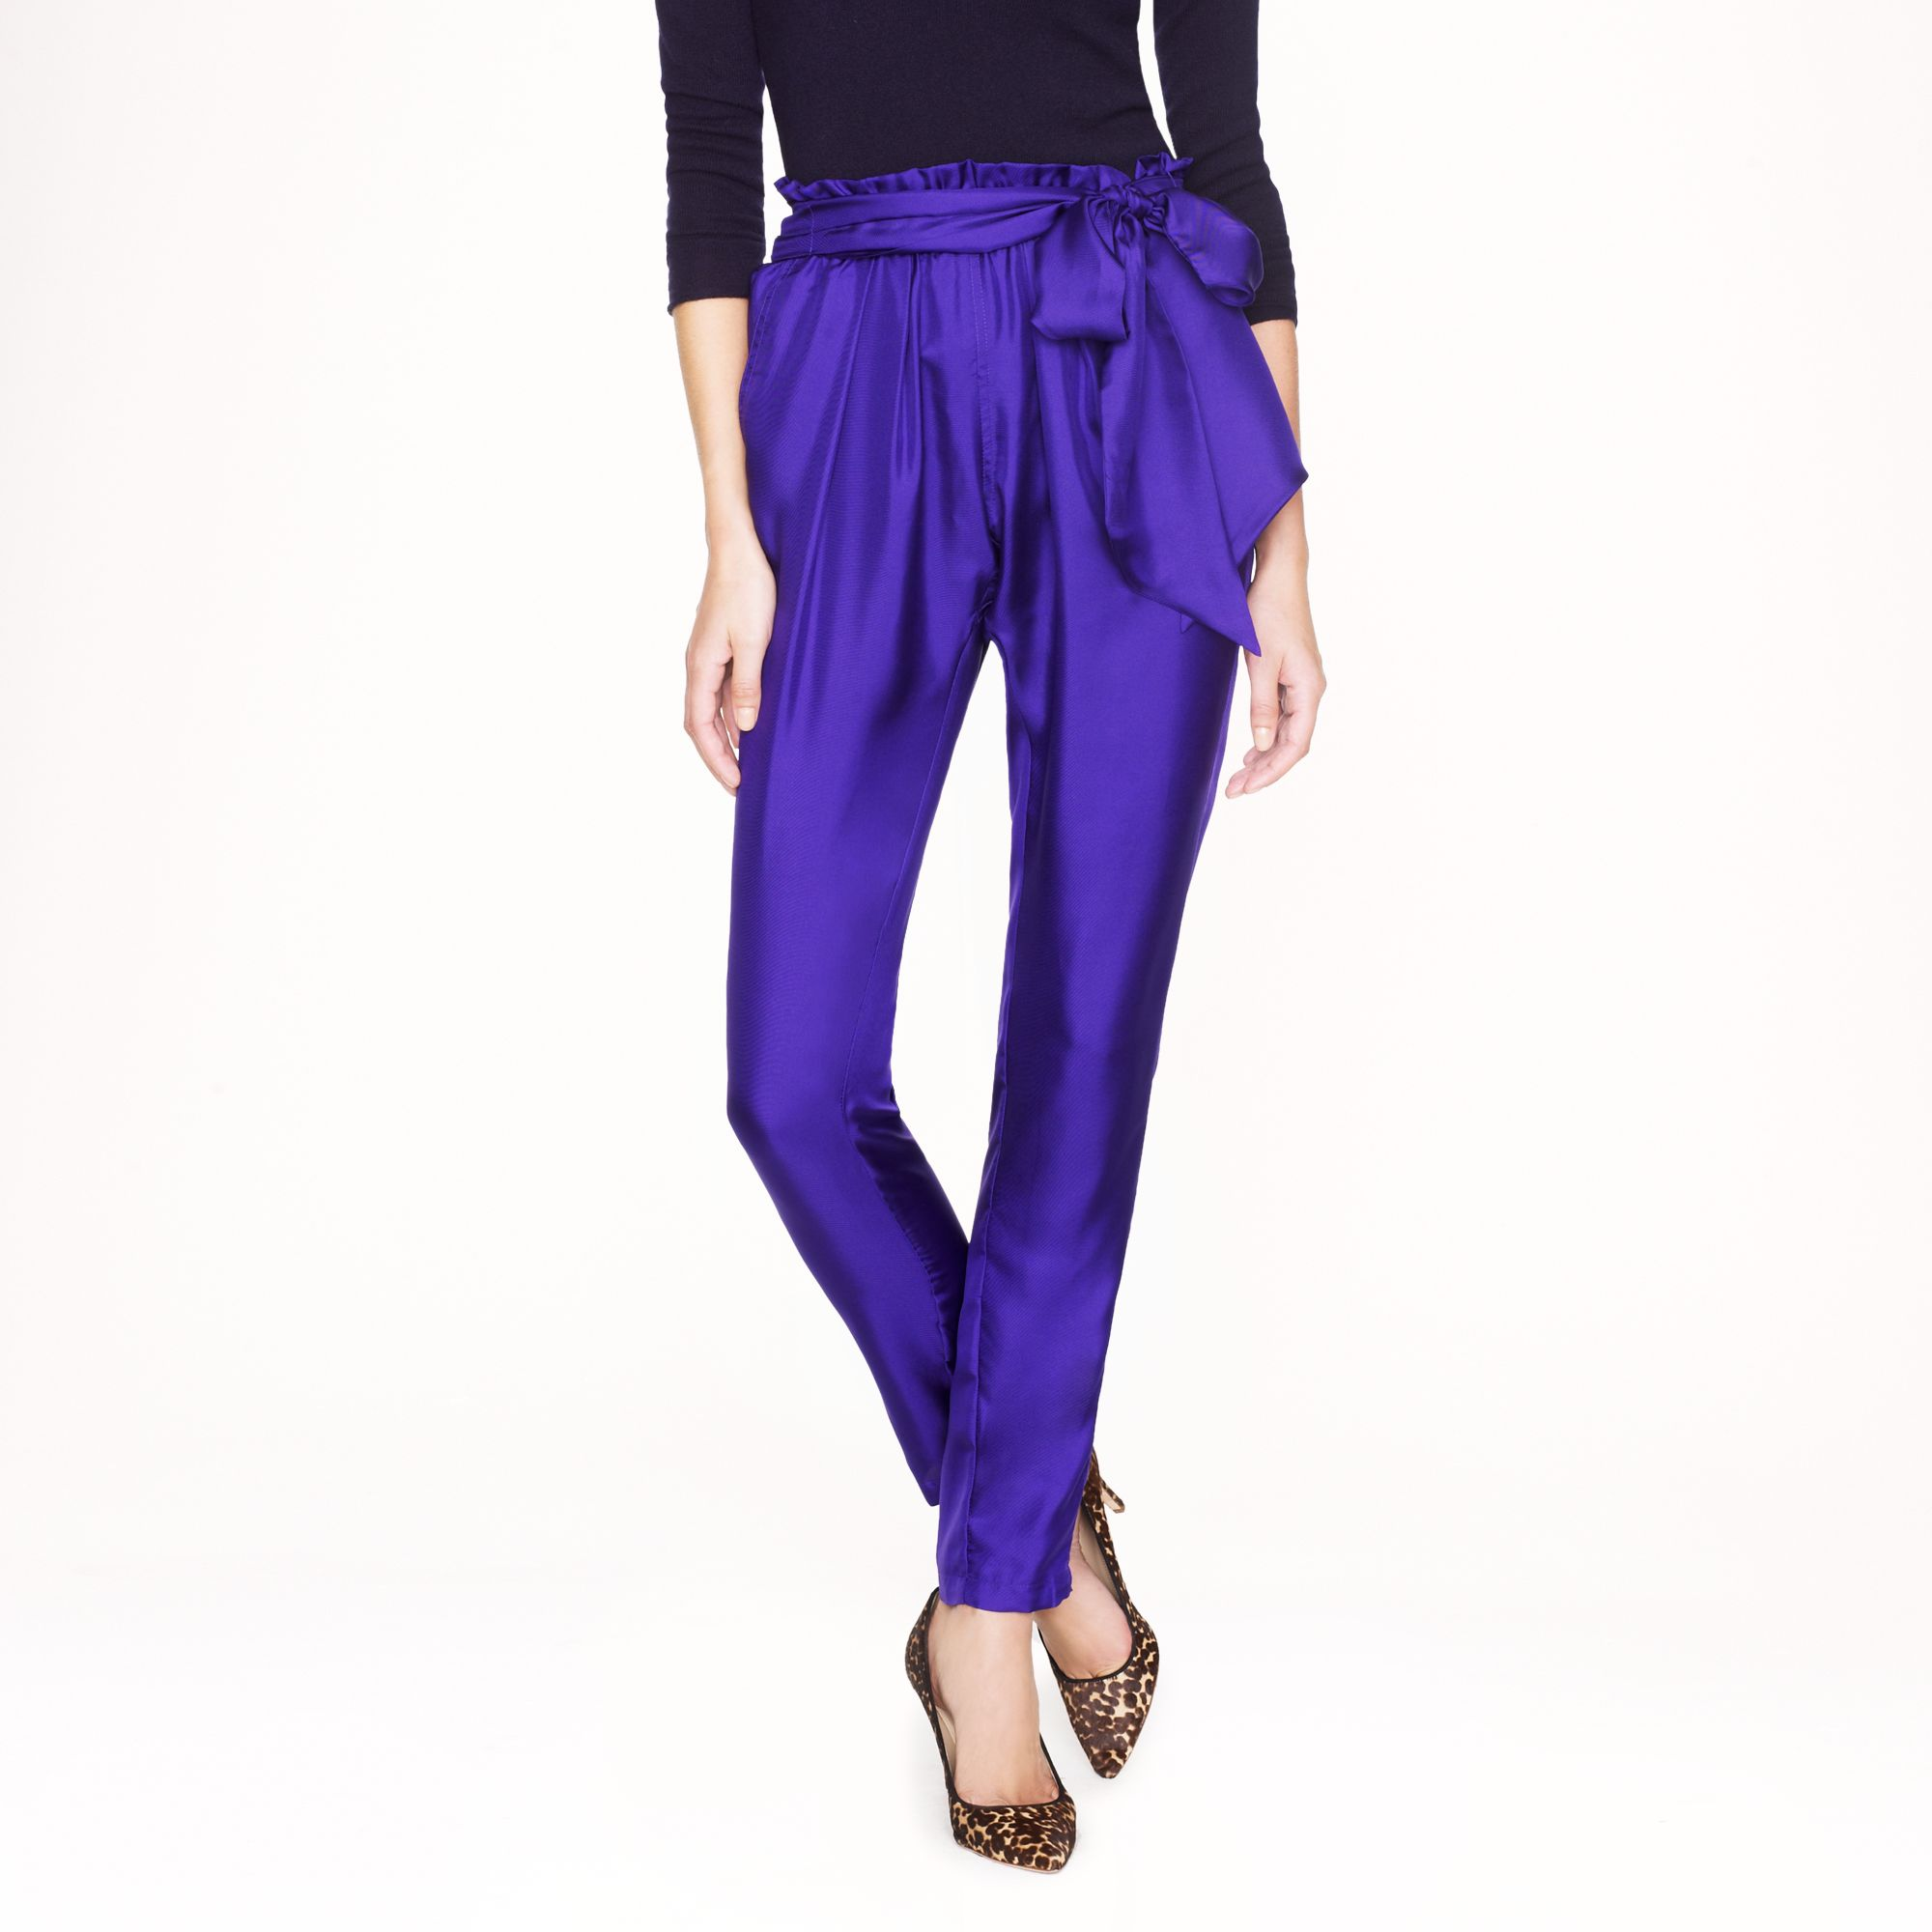 J.Crew Piamita™ Sienna Pant | Fancy Friday - Fancy Pants Holiday Pieces